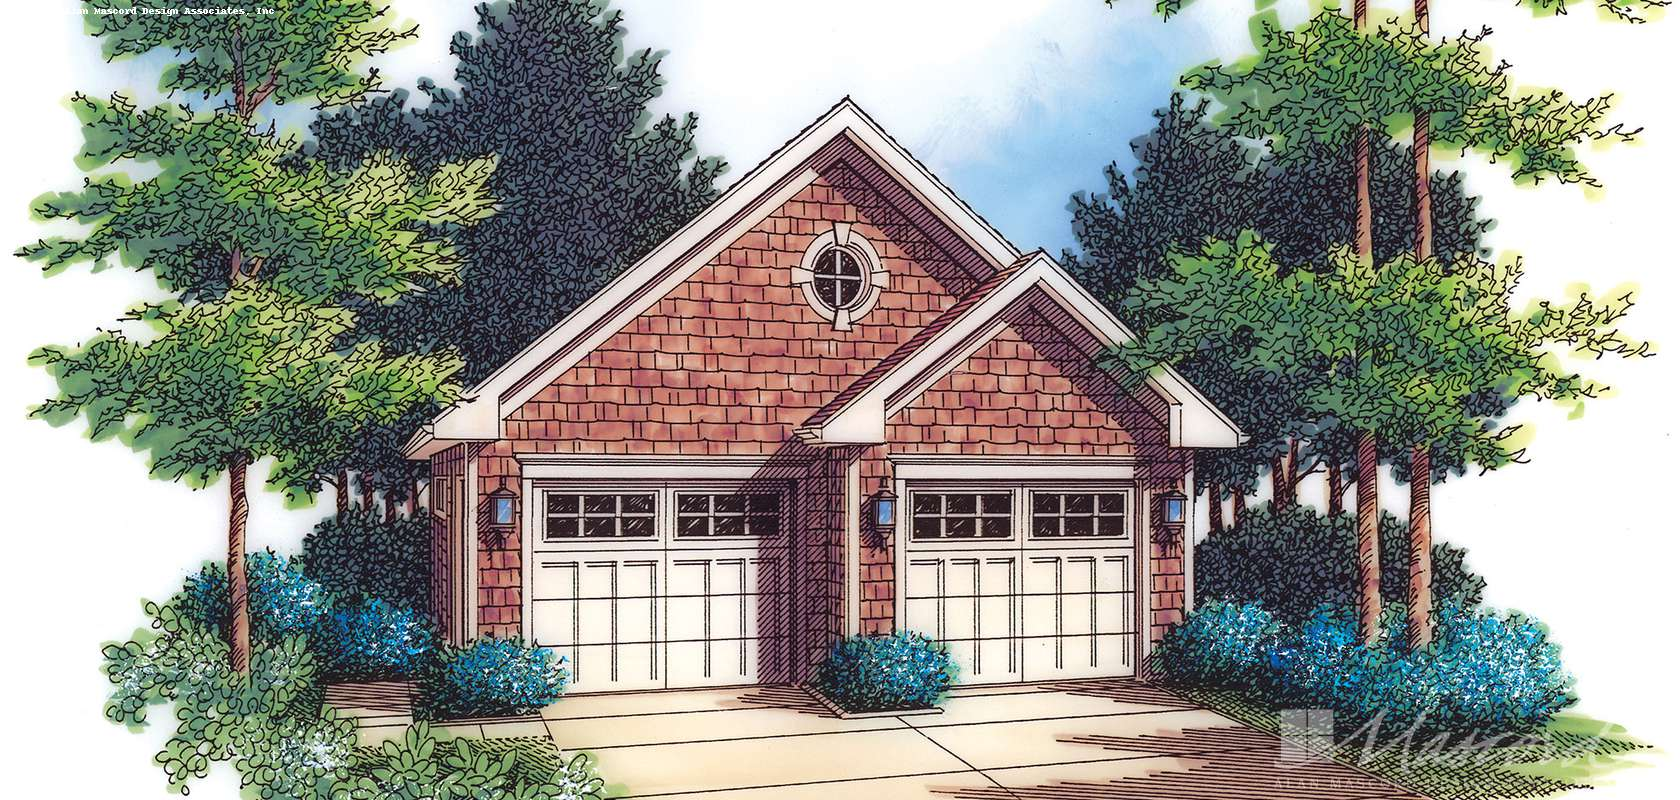 Mascord House Plan 5001: The Pikes Peak